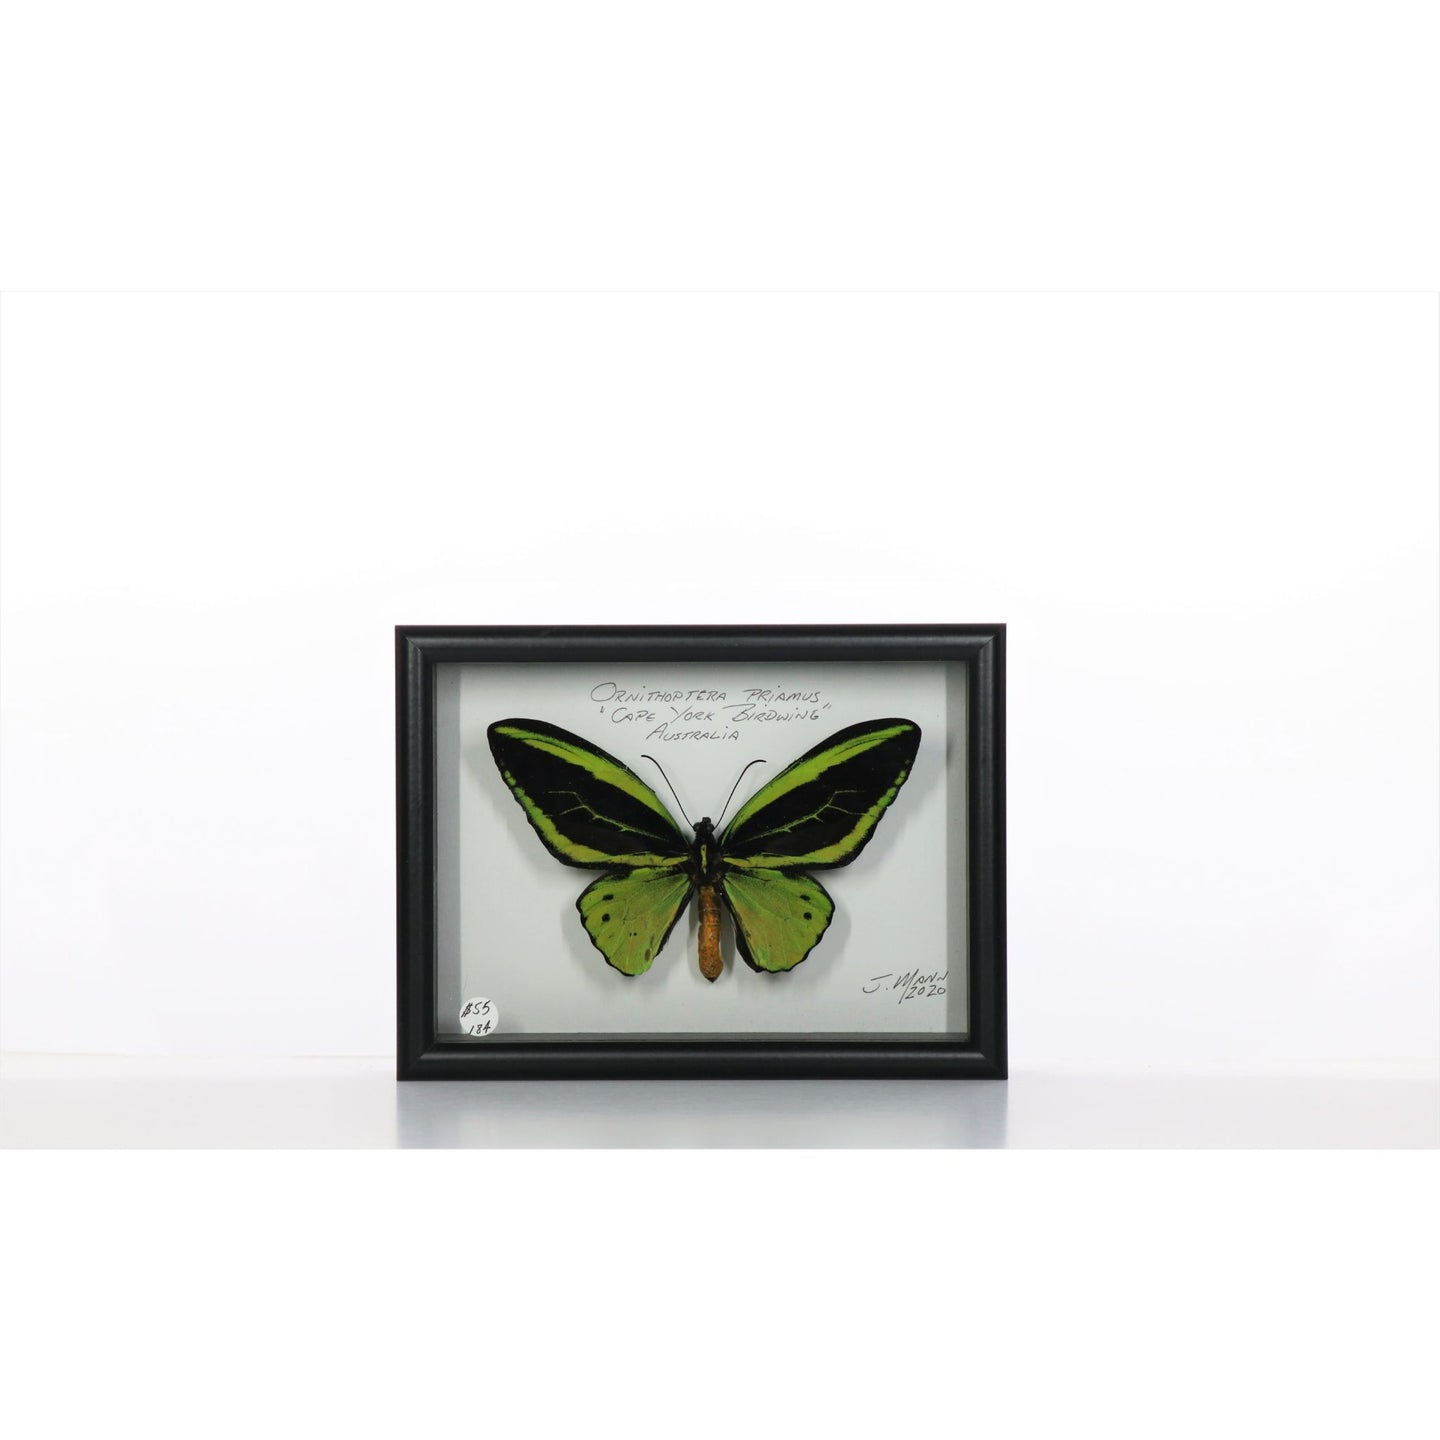 Cape York Birdwings 5x7 Black #184 Framed Art - Insecta Etcetera